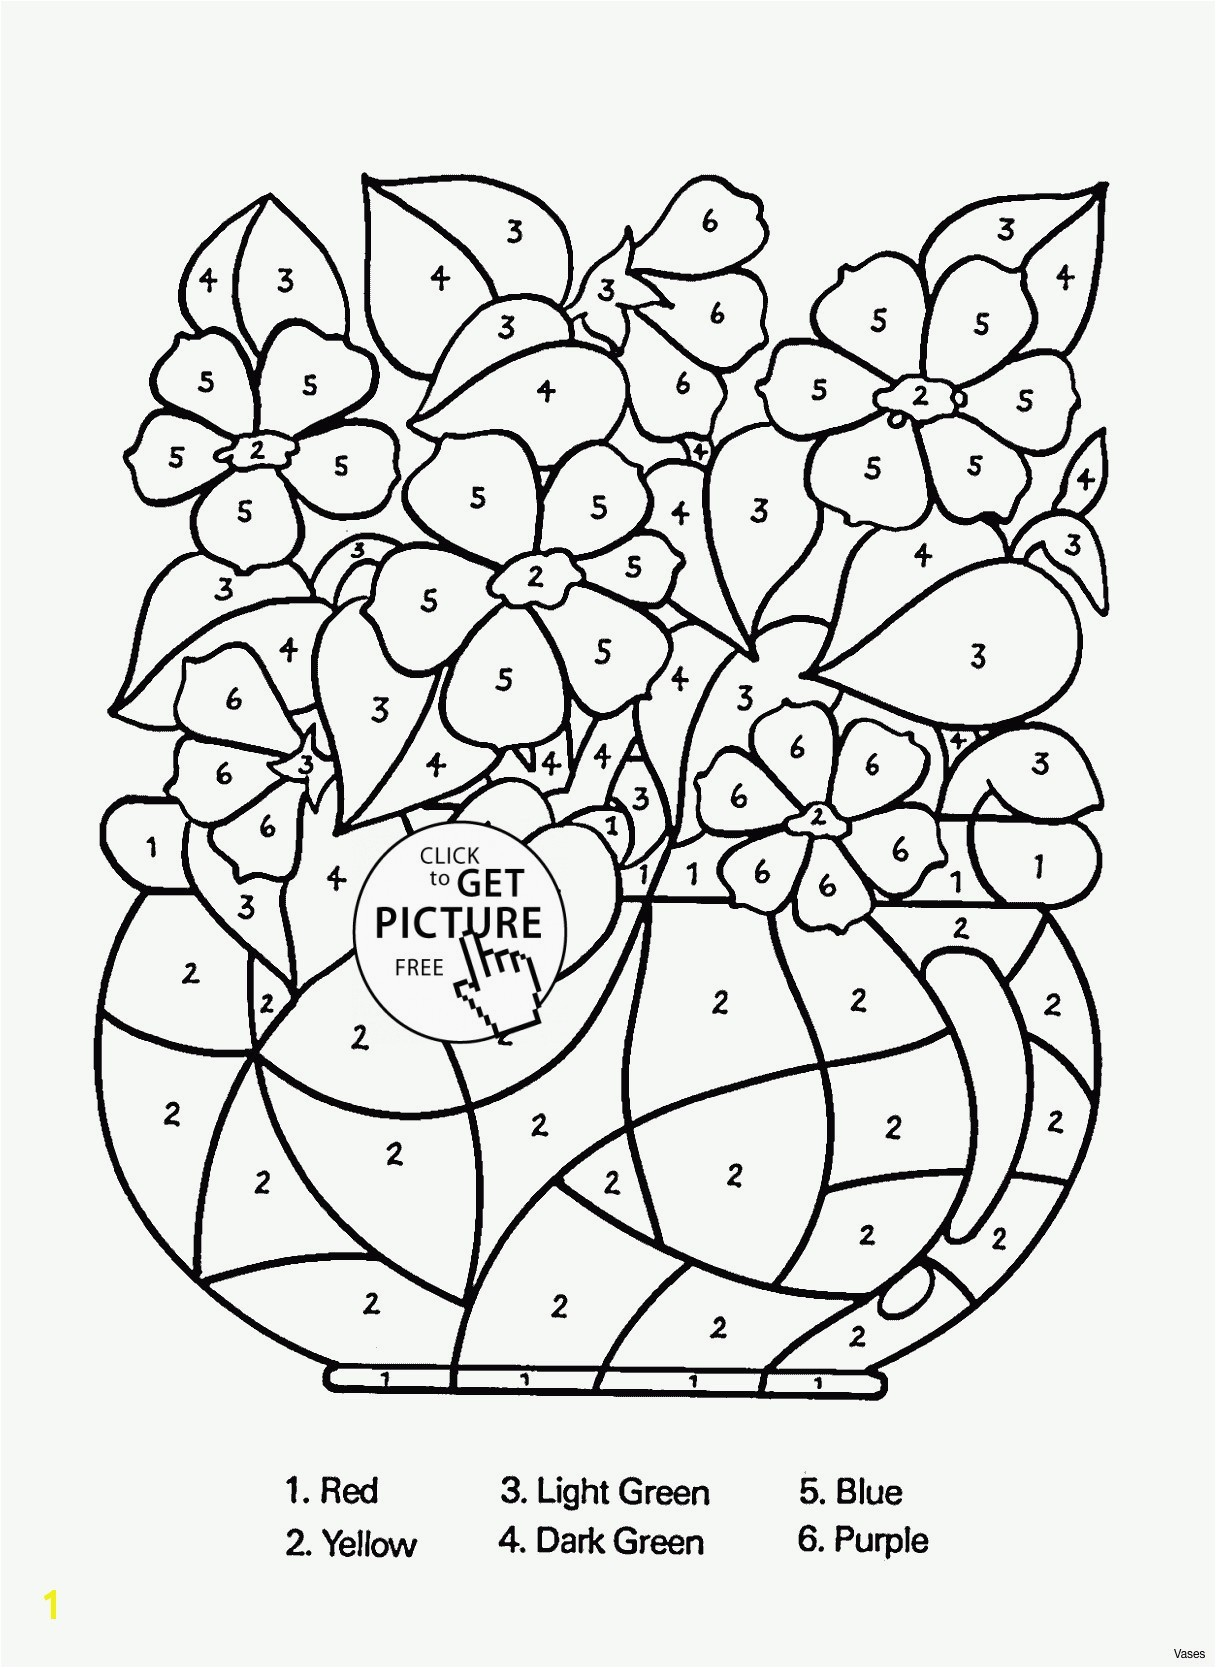 Preschool Fall Leaves Coloring Pages 12 Fresh Fall Leaf Coloring Pages